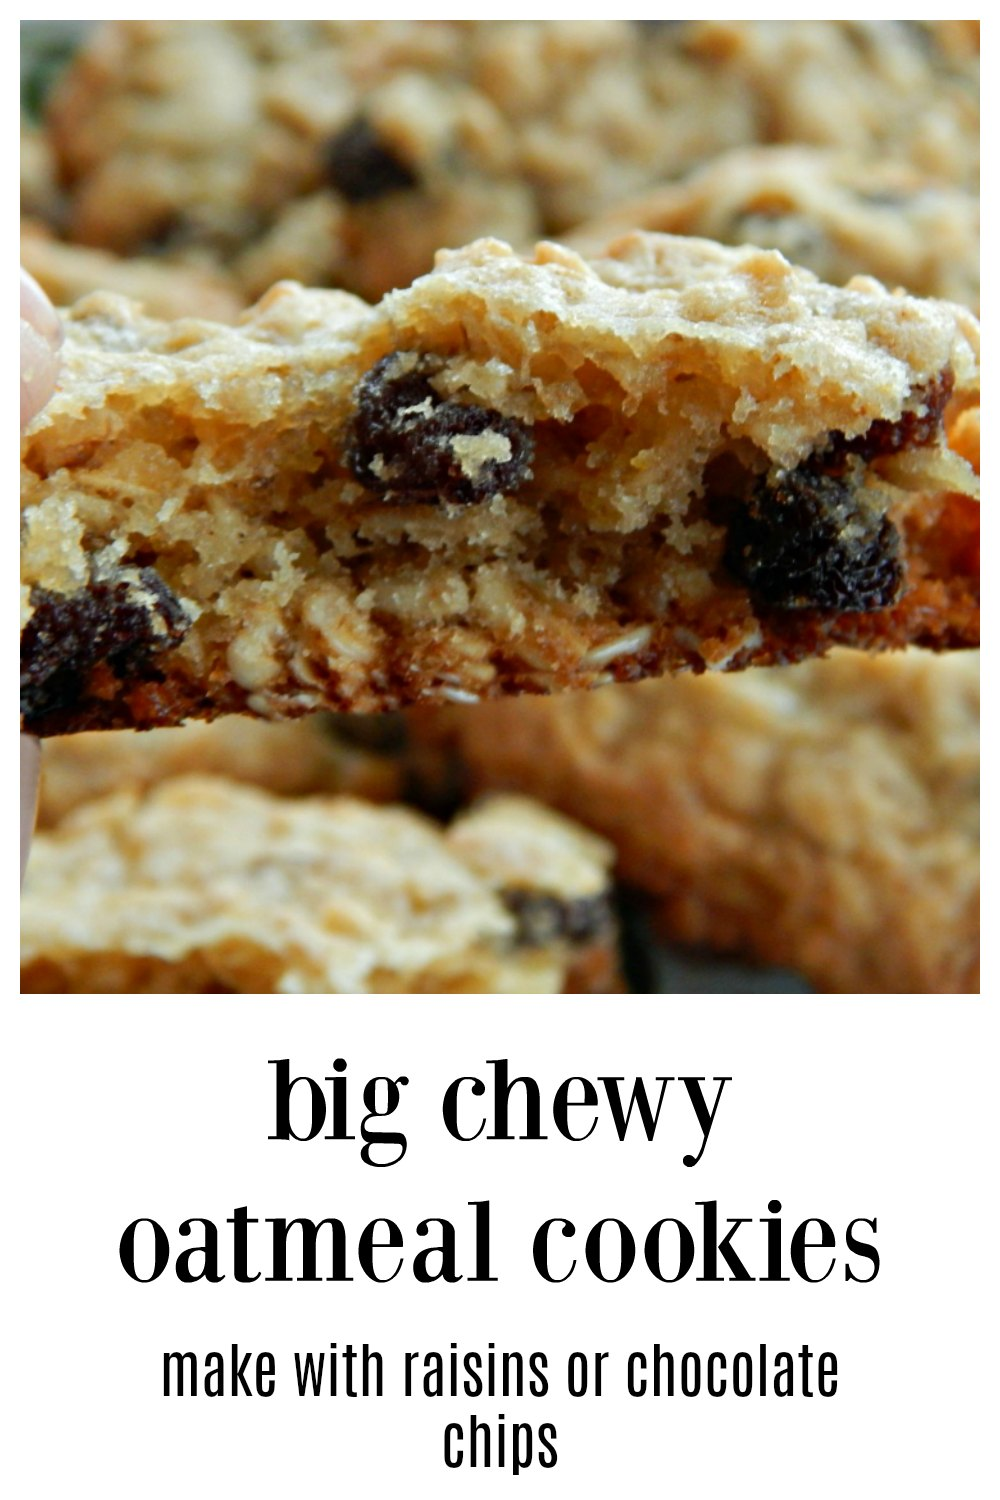 These Big Chewy Oatmeal Cookies are hands down our fave & I think they'll be yours, too. Make with raisins or chocolate chips. Or maybe you'd like to go with toffee bits, M&M's or another dried fruit. They are easily customized. #OatmealCookies #BigChewyOatmealCookies #ChocolateChipOatmealCookies #RaisinOatmealCookies